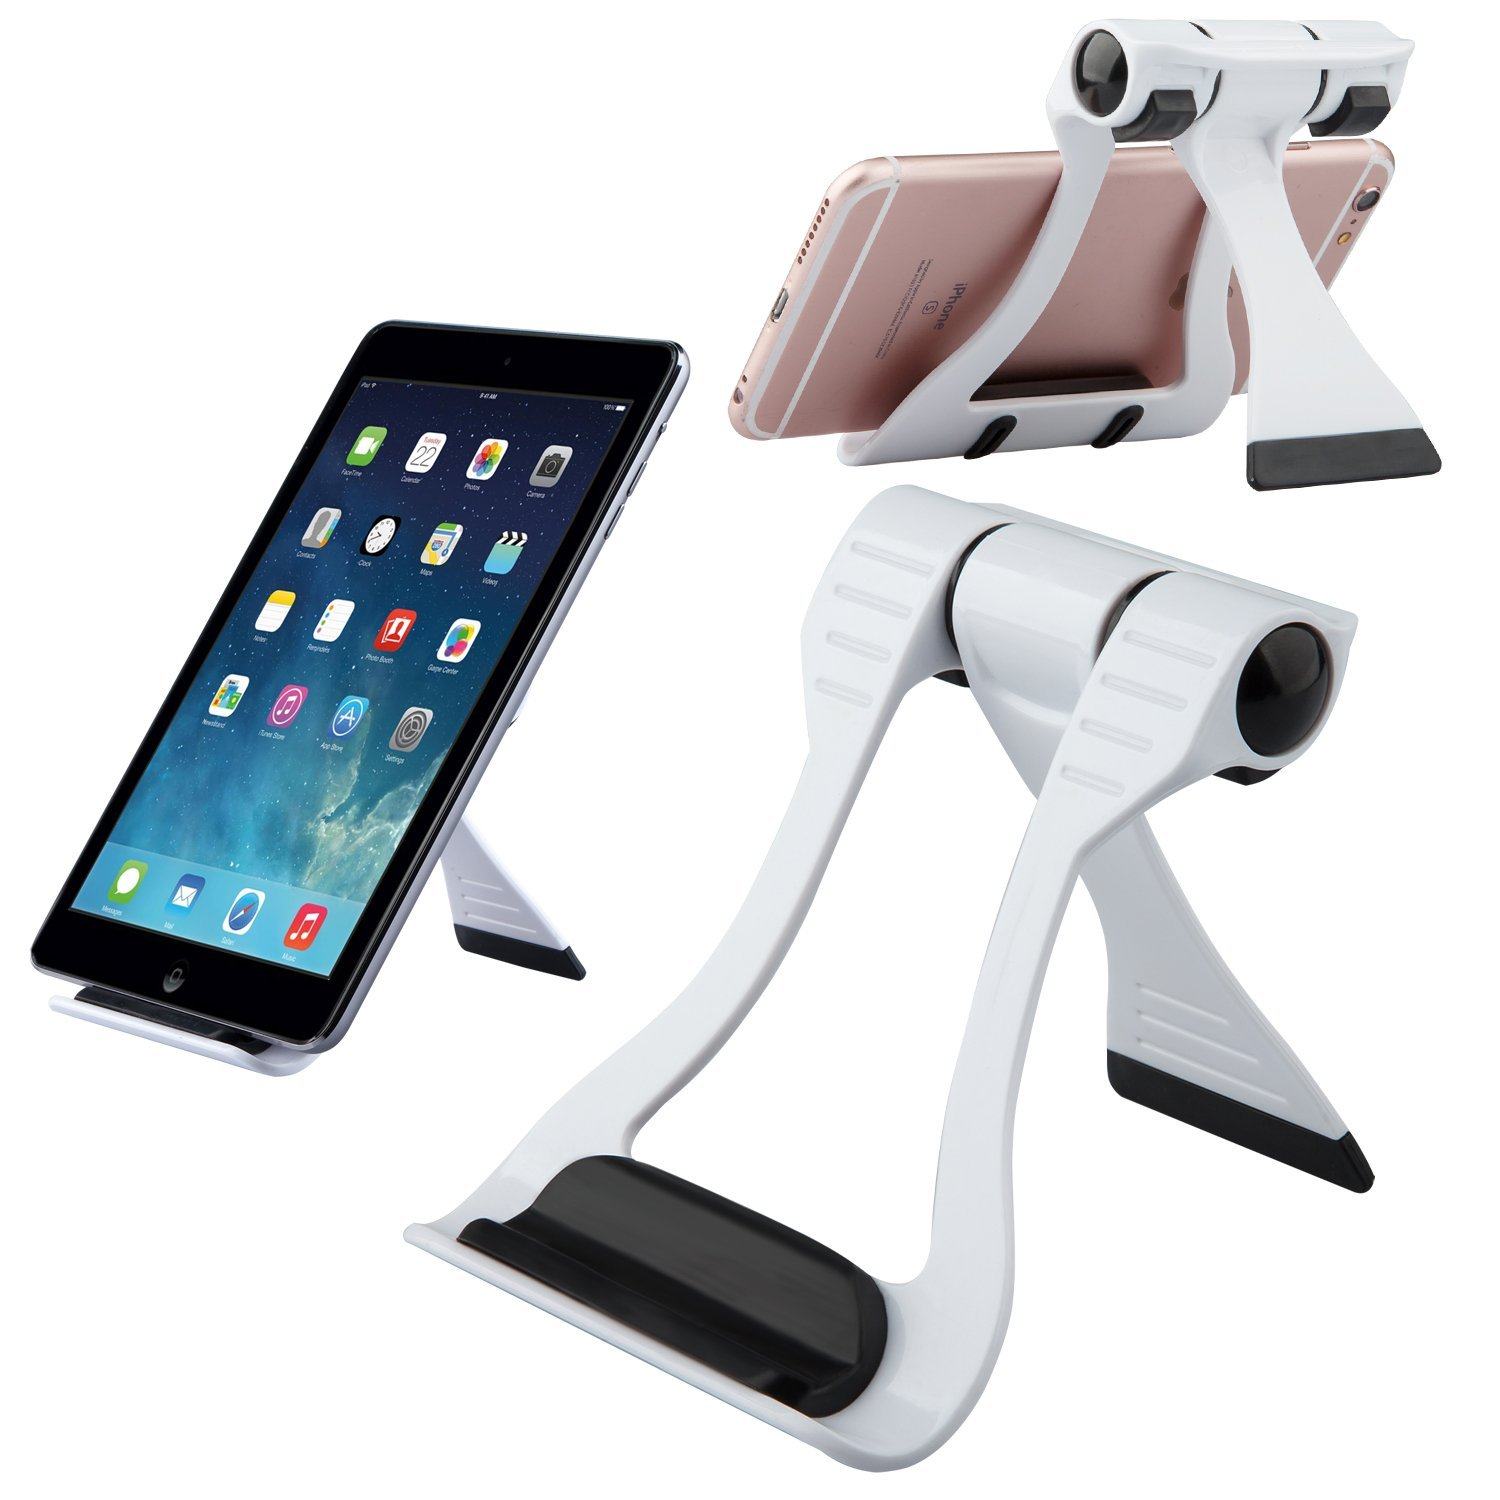 Buyus iPhone 7 / 7 Plus Stand for Desk, fits Apple iPhone 6 / 6S, Plus, 5 / 5S / 5C / SE, 4 / 4S, iPod, iPad, Samsung Galaxy J2, S7, S6, Edge, S5, S4, S3, Note 5, 4, 3, LG G5, G4, G3 & More (Black)